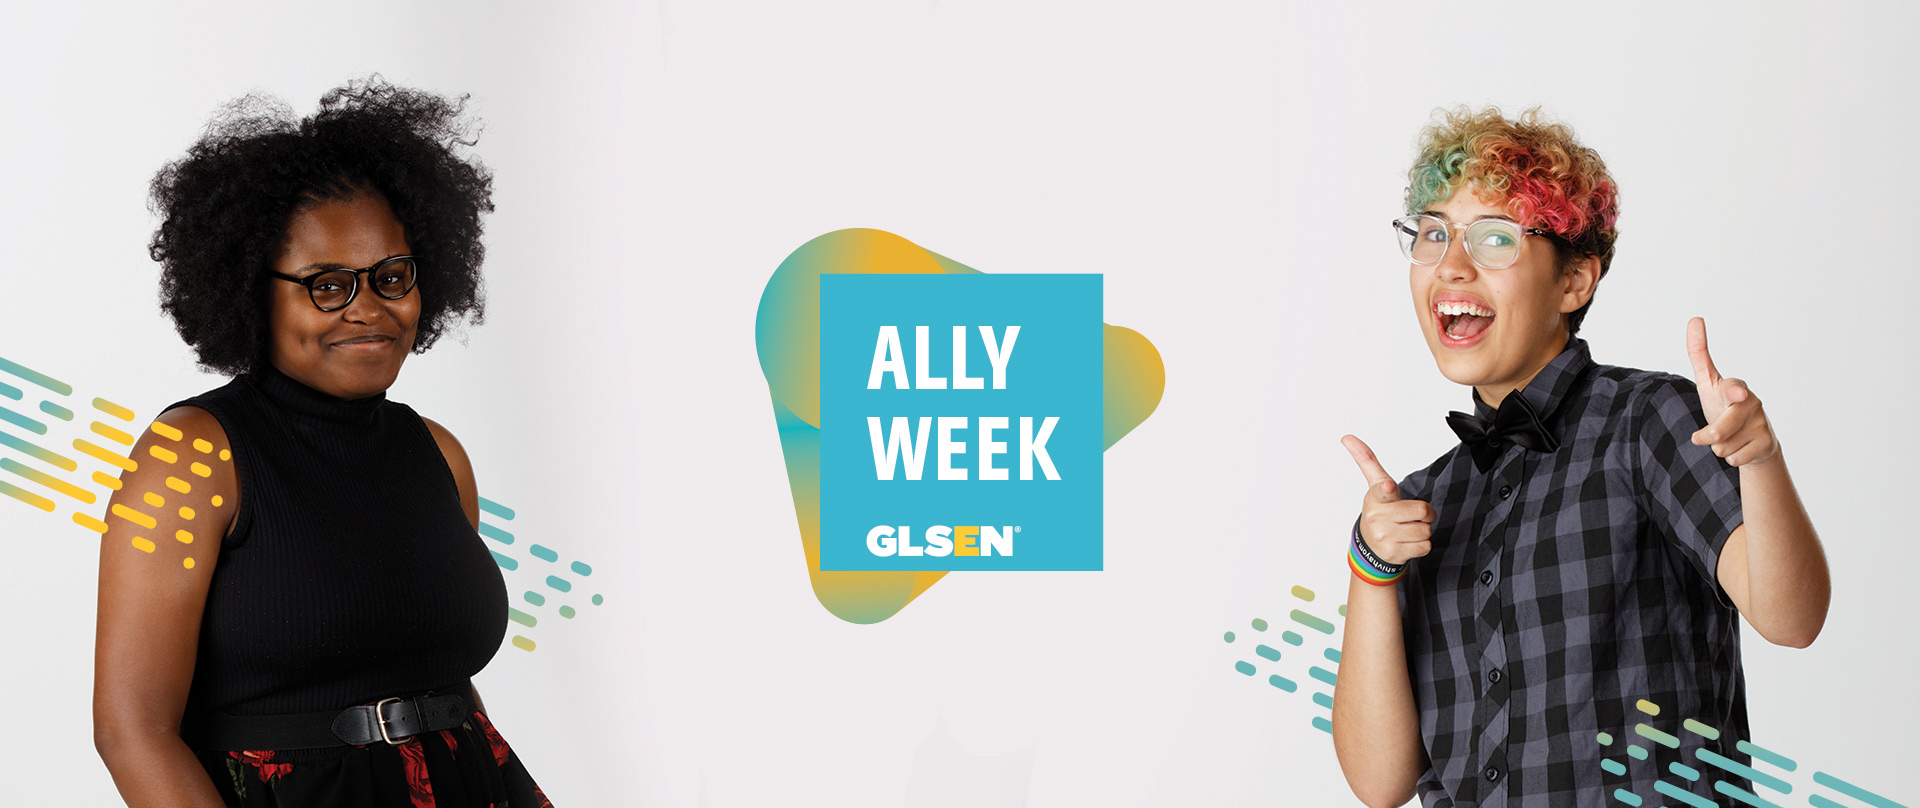 Ally Week header with two students and logo